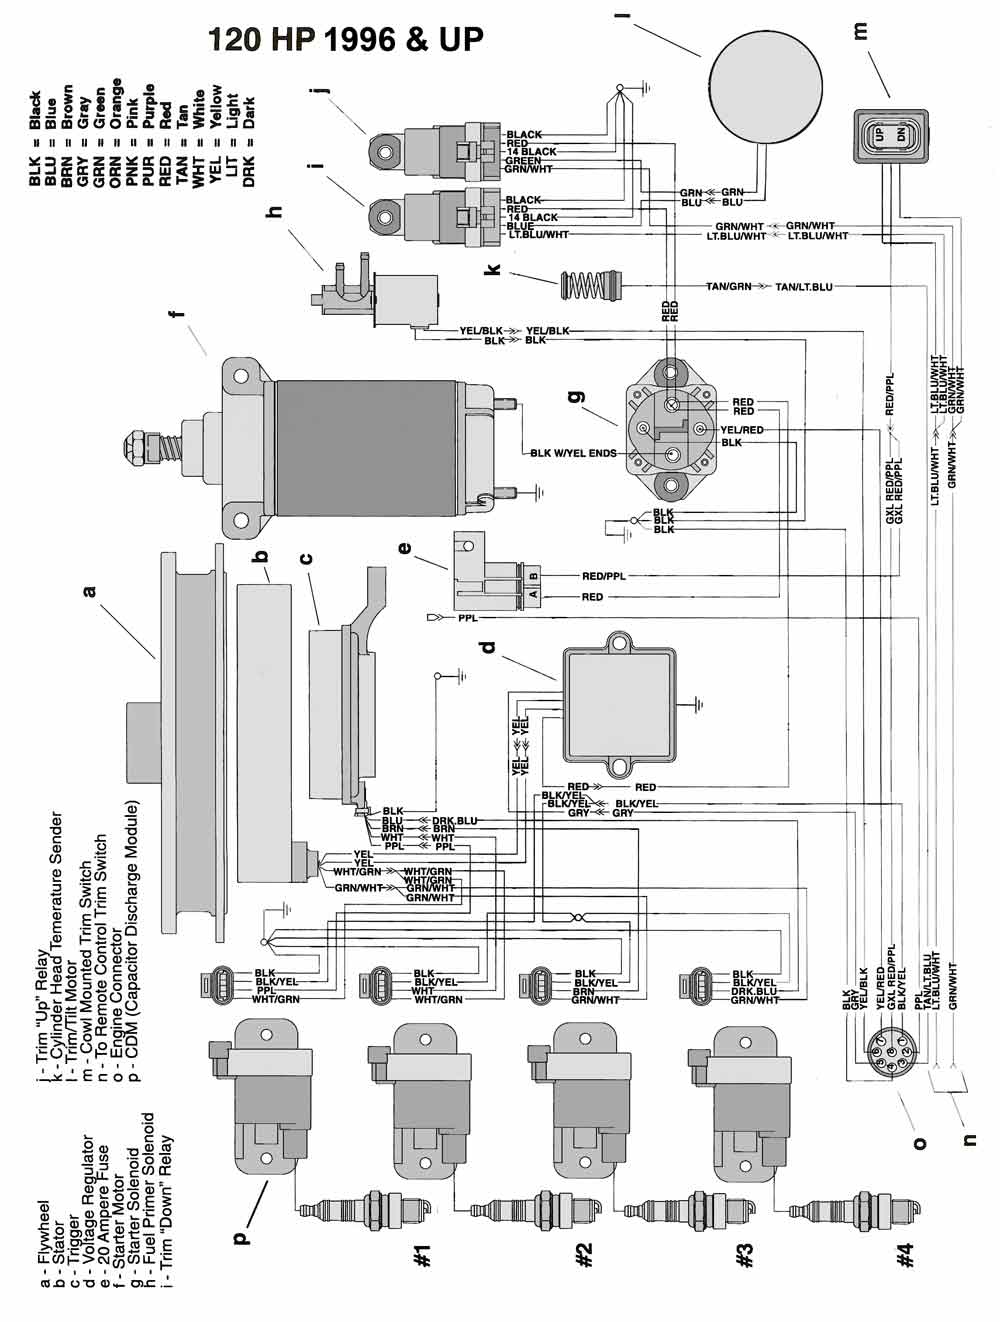 120HP_96_up mastertech marine chrysler & force outboard wiring diagrams 85 HP Force Outboard at n-0.co